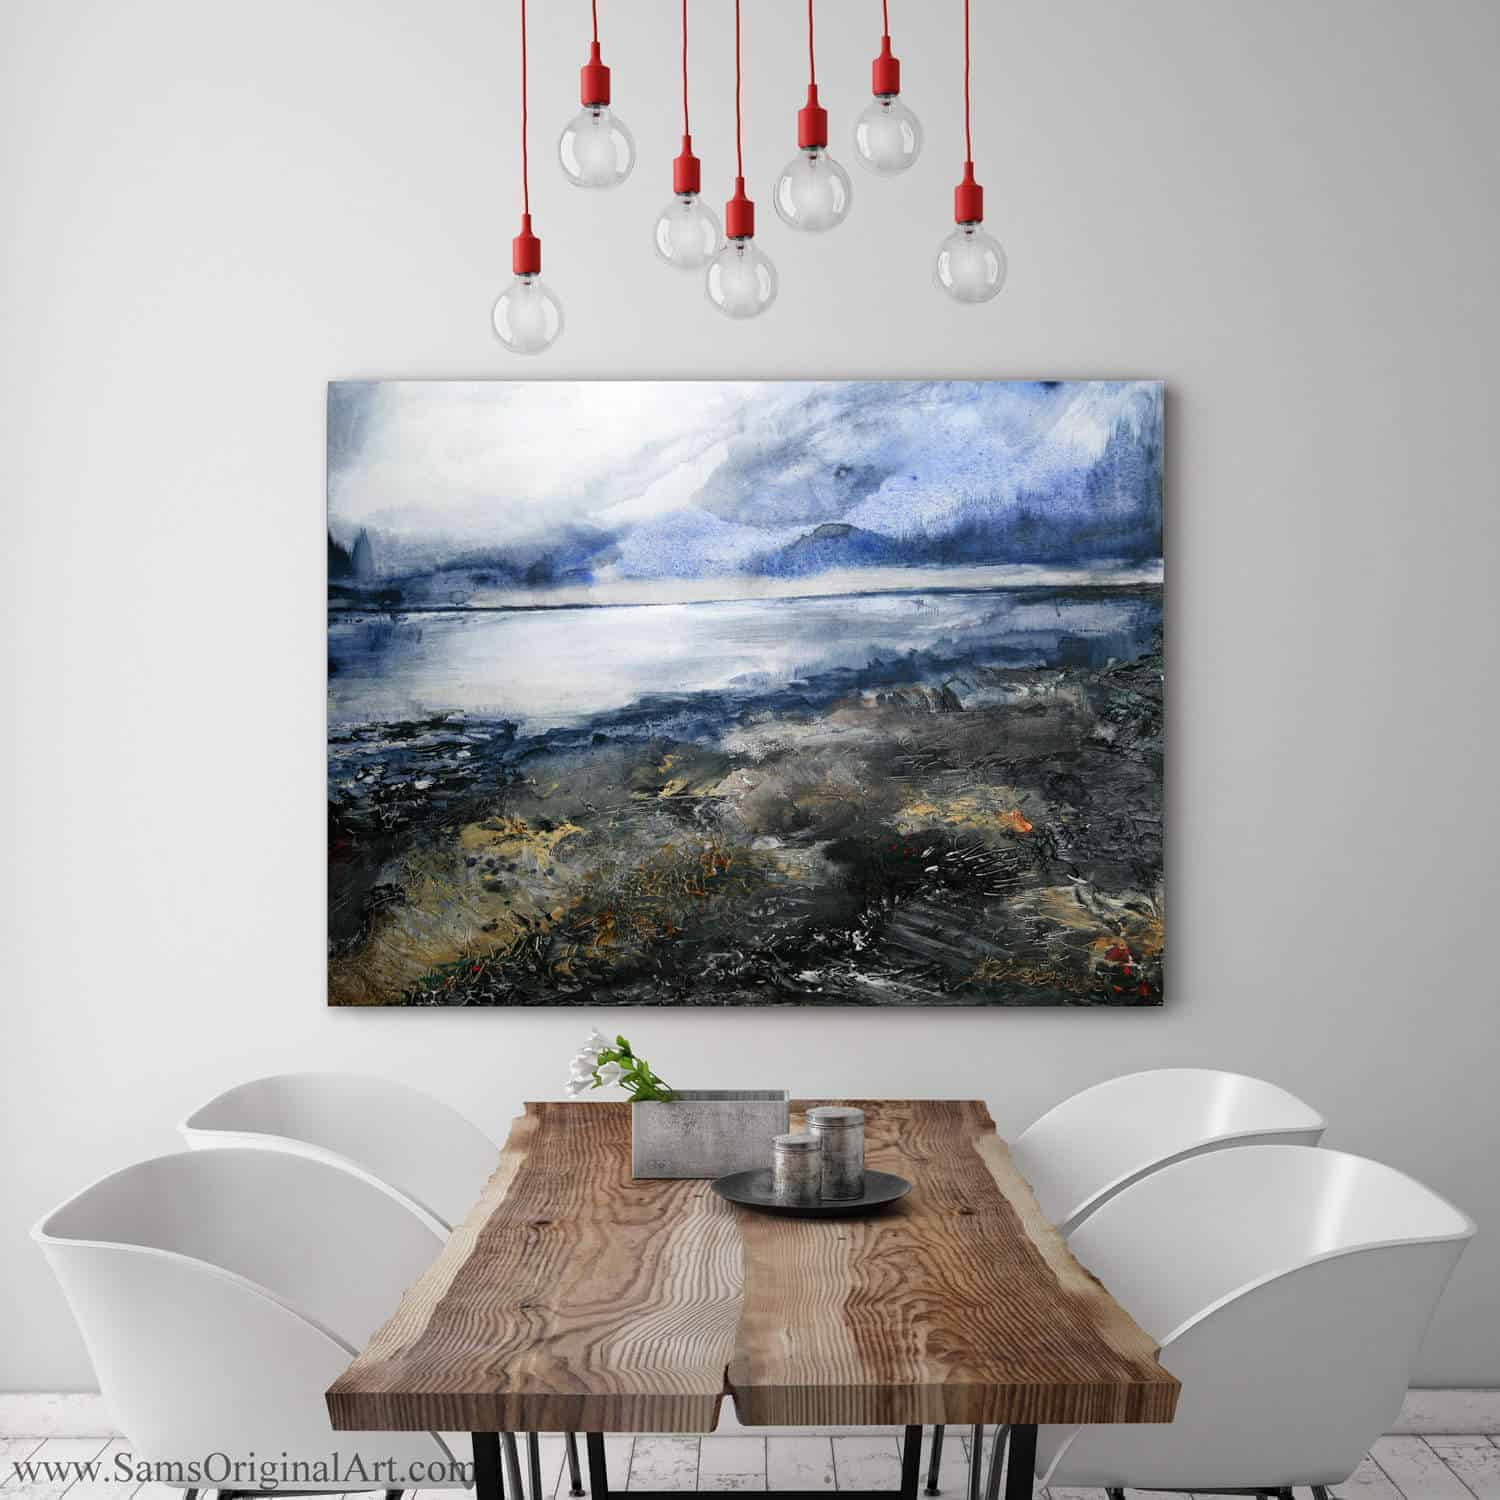 Giclee Wall Print Title: Winter Beach